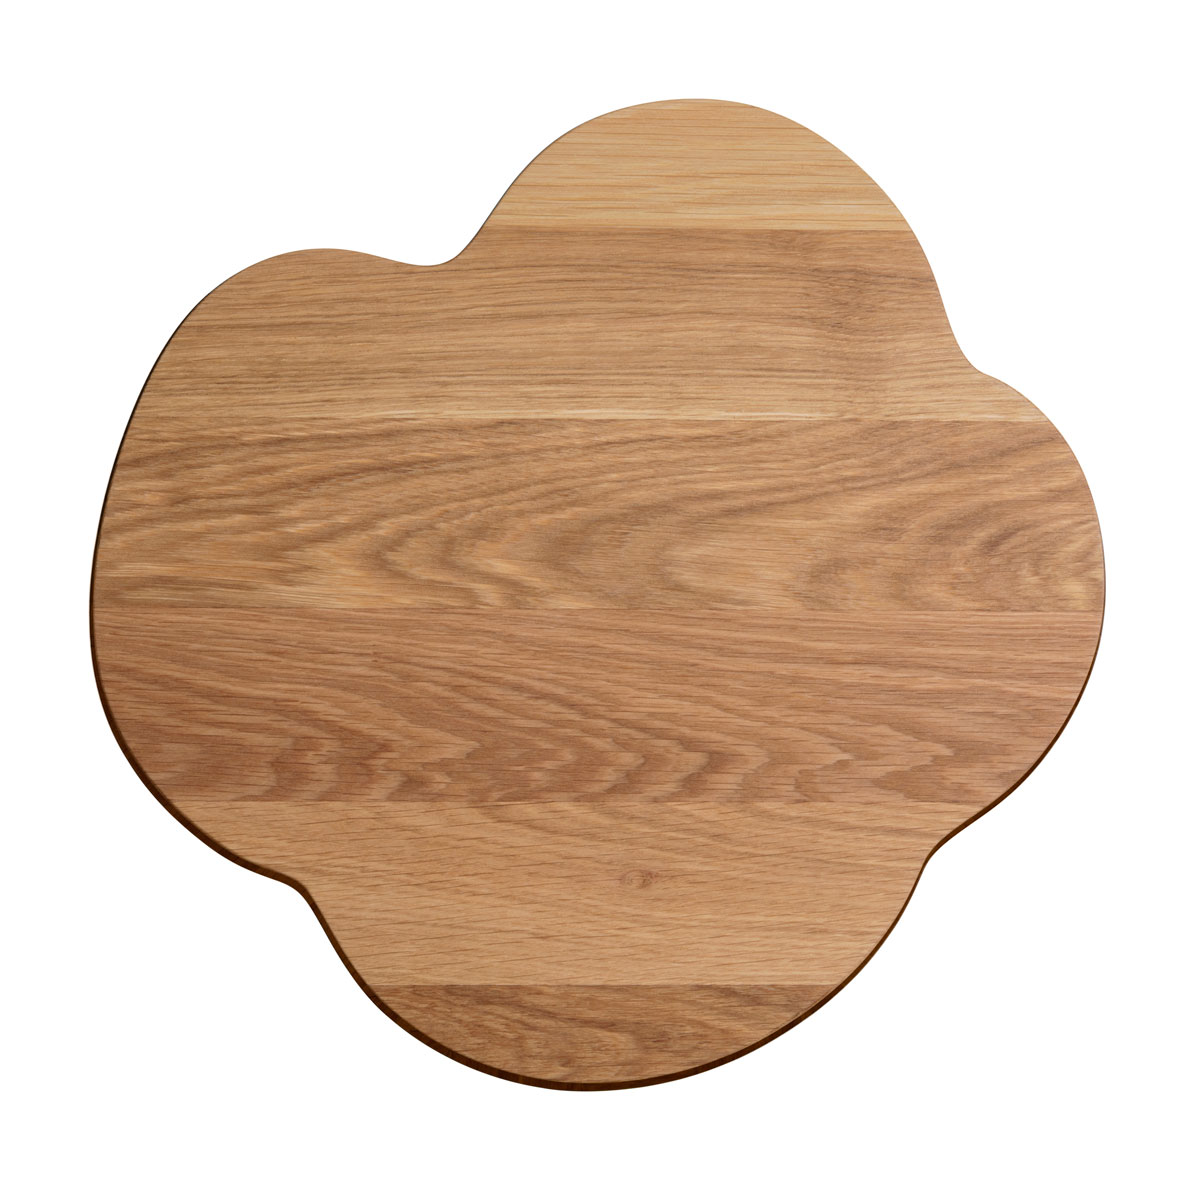 Iittala Aalto Serving Tray Oak 13.75""